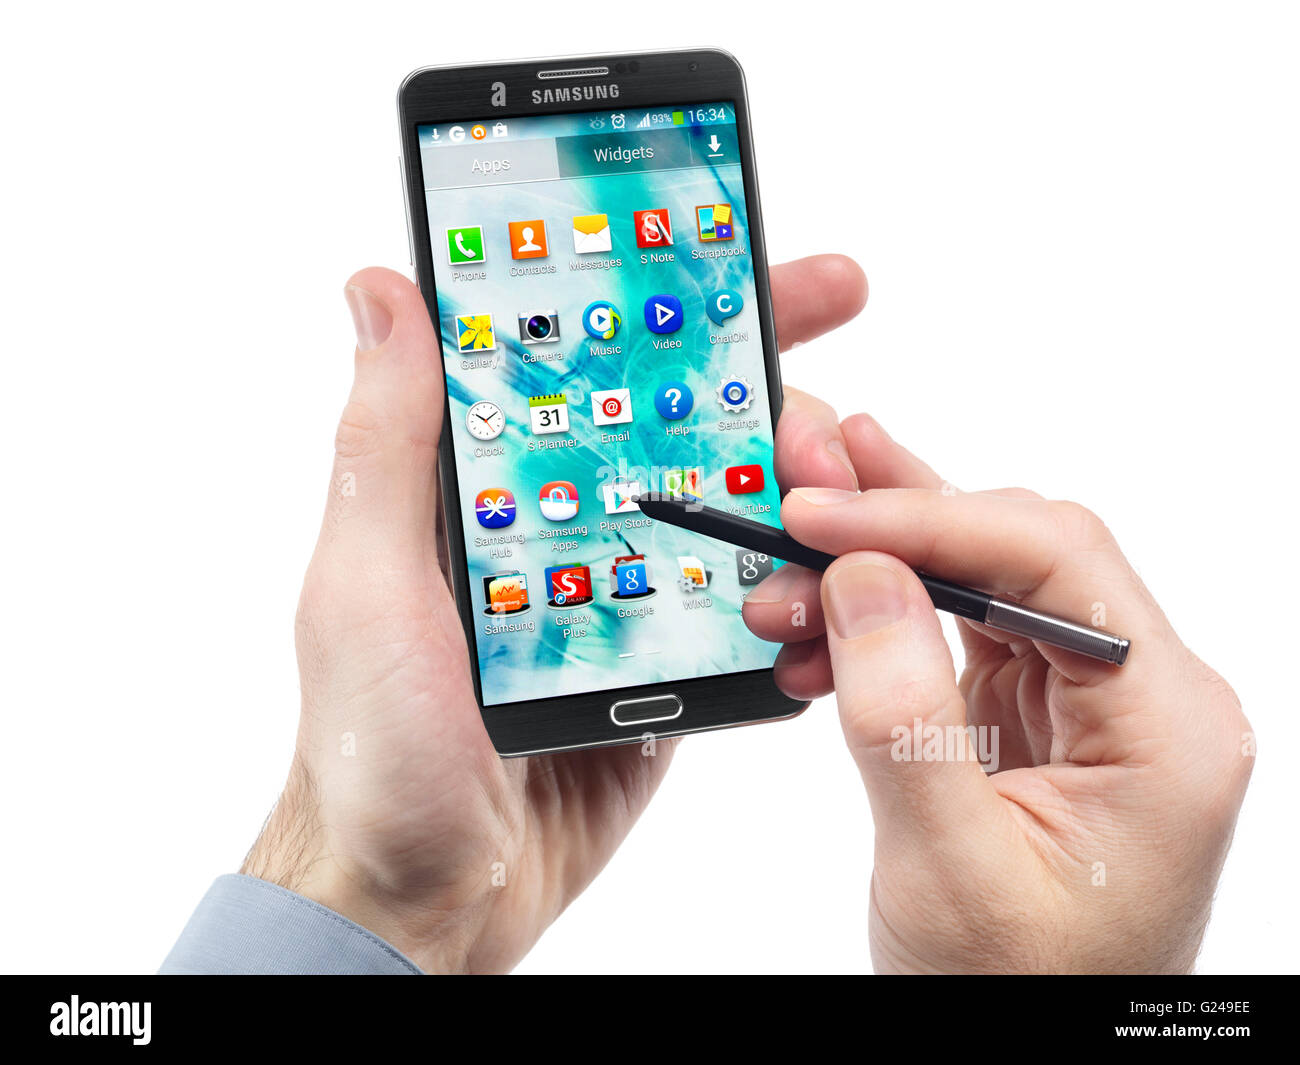 Man's hands with Samsung Galaxy Note III smartphone - Stock Image